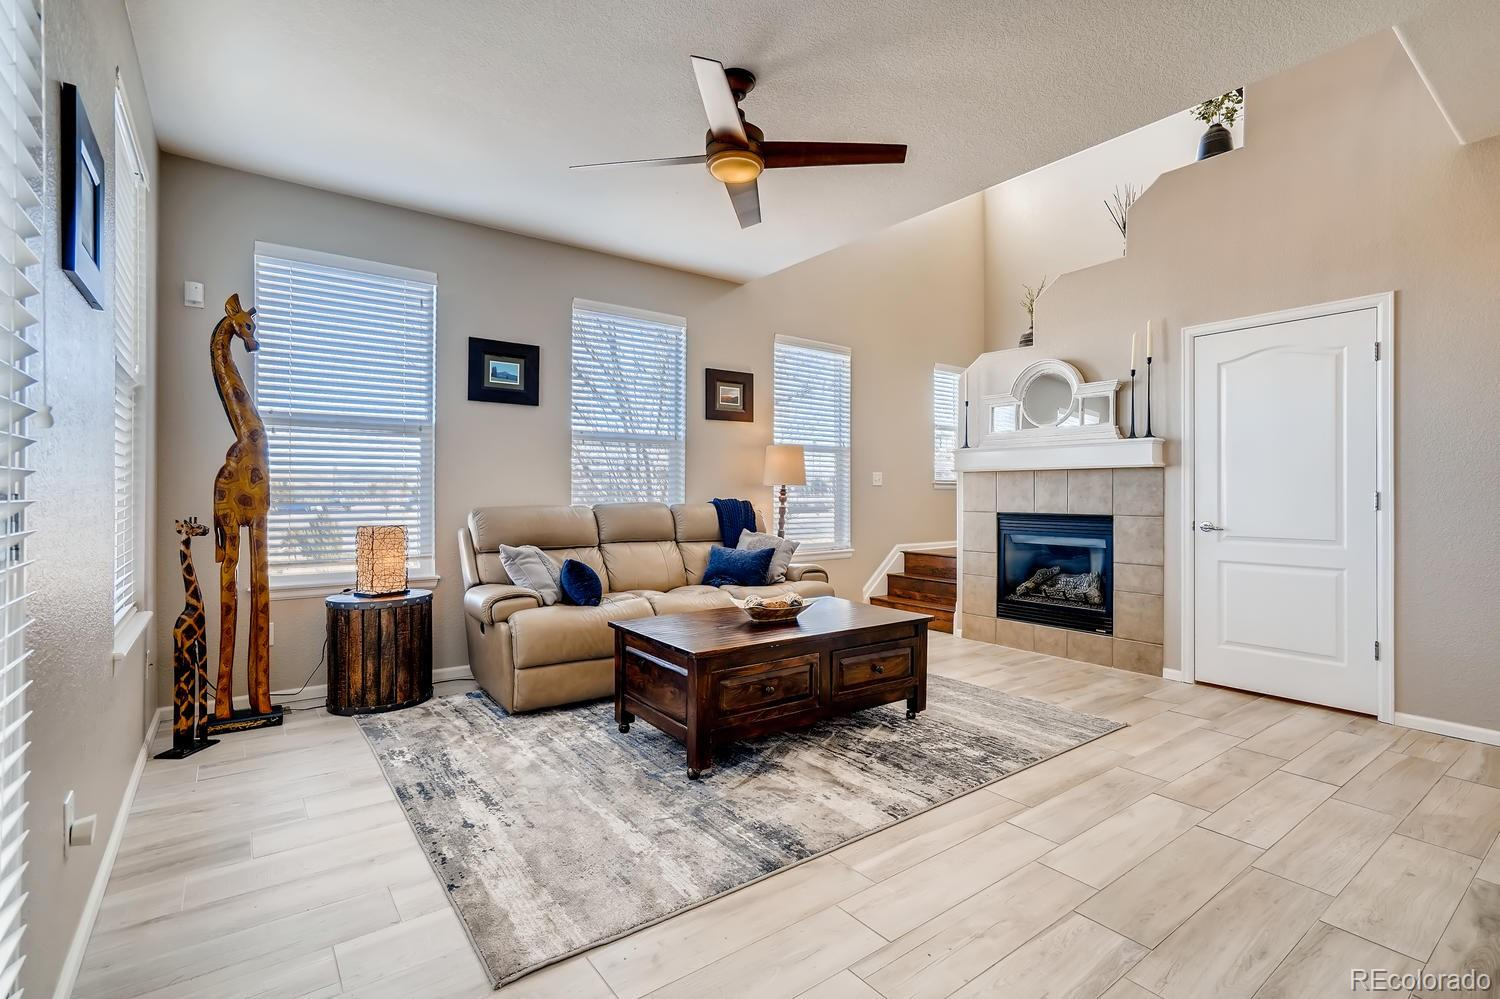 MLS# 8227370 - 9 - 10562 Atwood Circle, Highlands Ranch, CO 80130